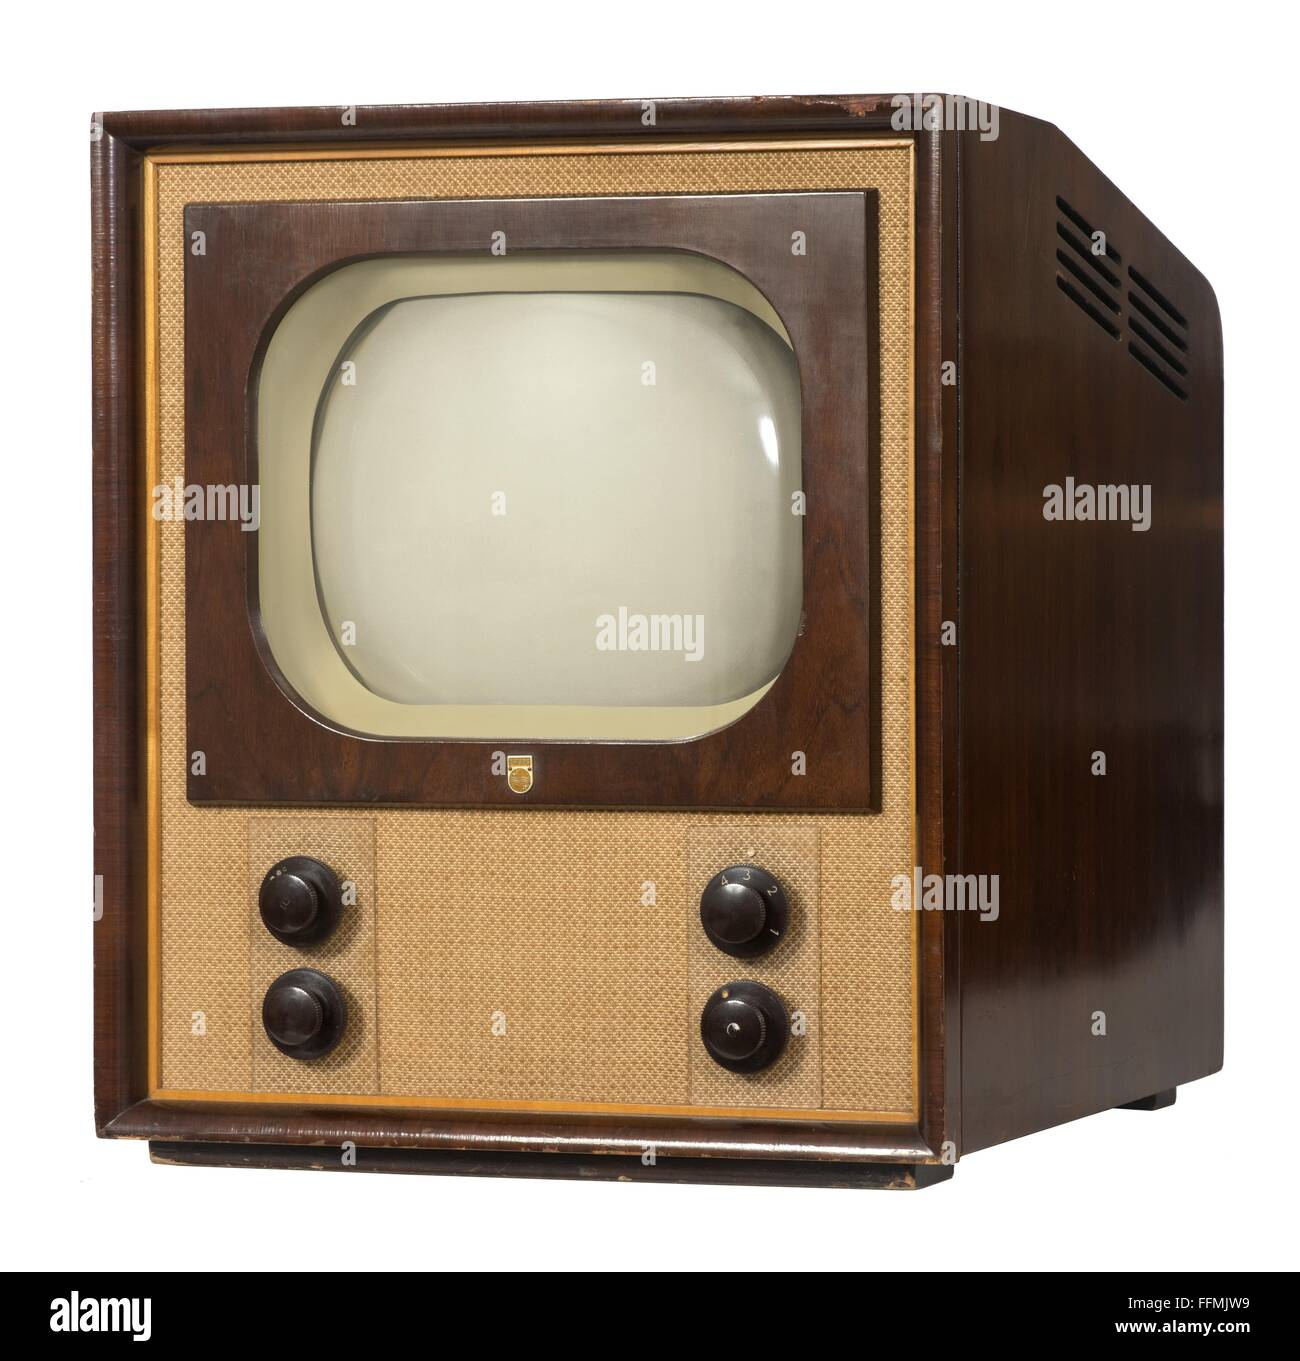 broadcast, television, television set Philips TX 500, early Dutch postwar device, chassis: wood, Netherlands, 1951, - Stock Image